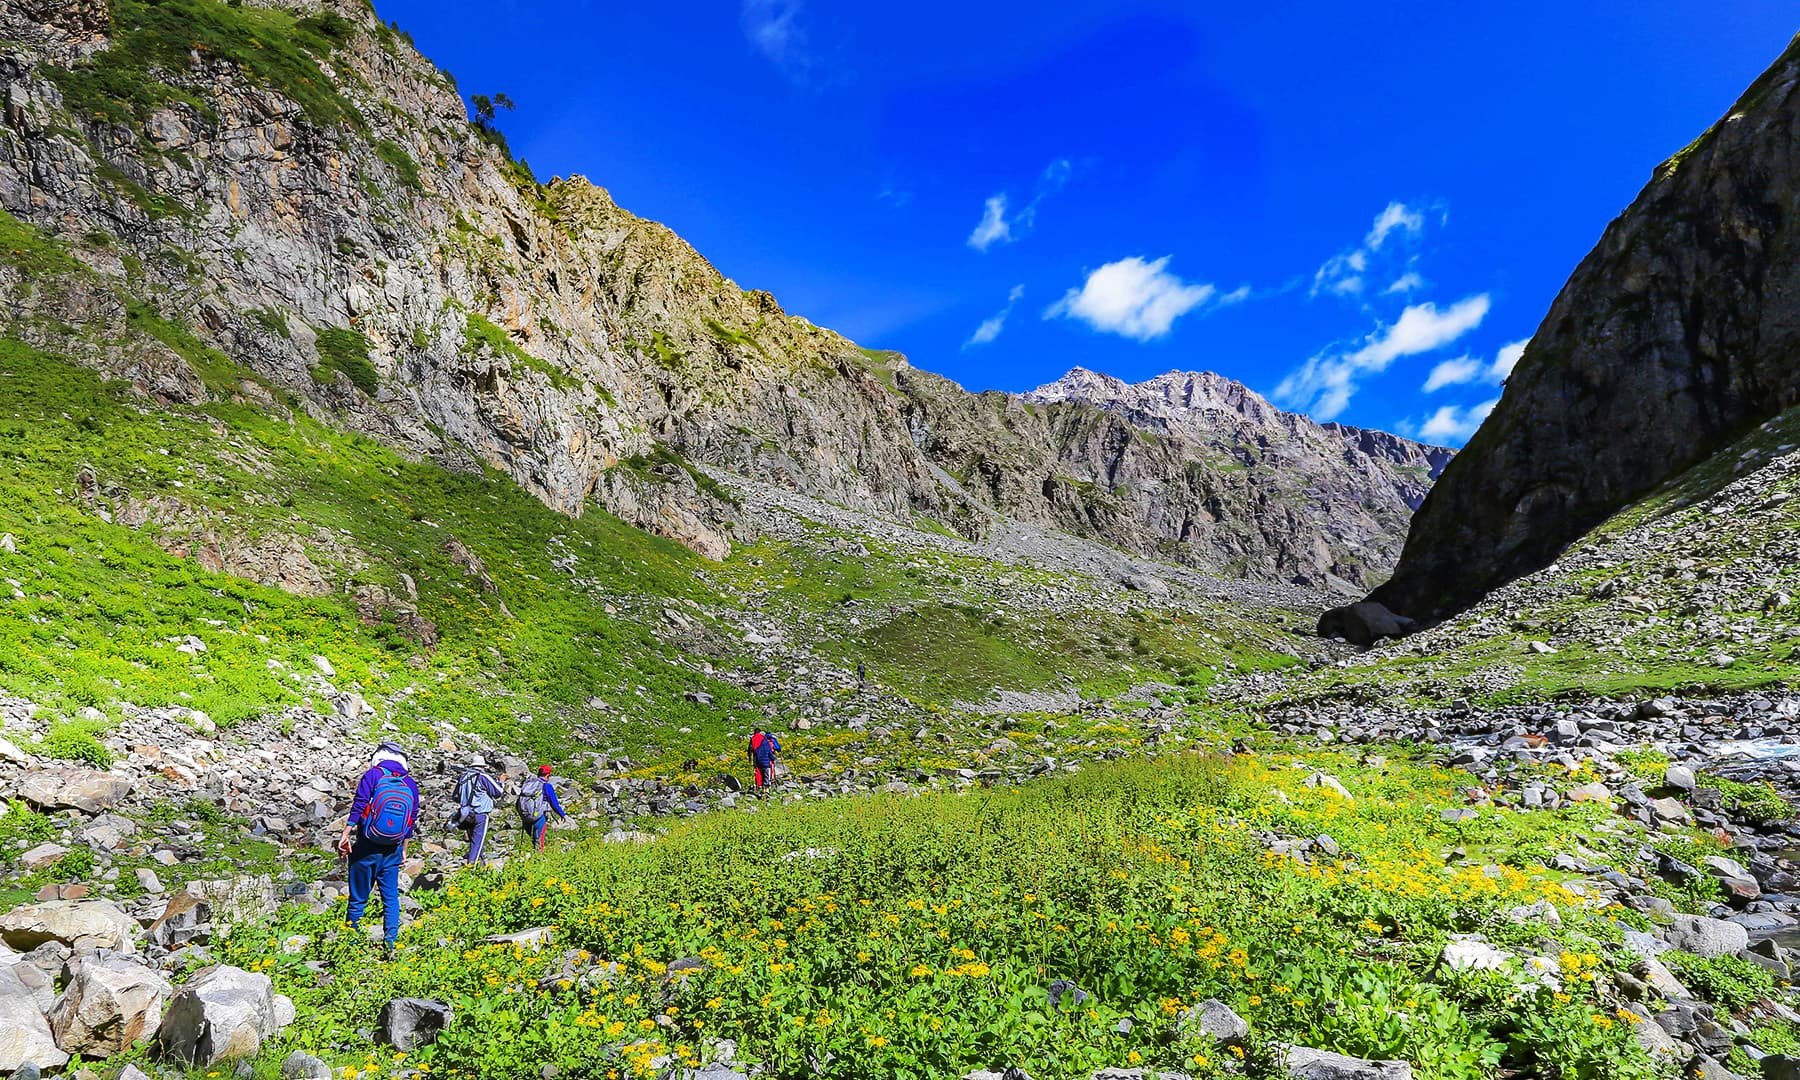 Trekkers and tourists pass the scenic Janshai meadows towards Mastij Lake.